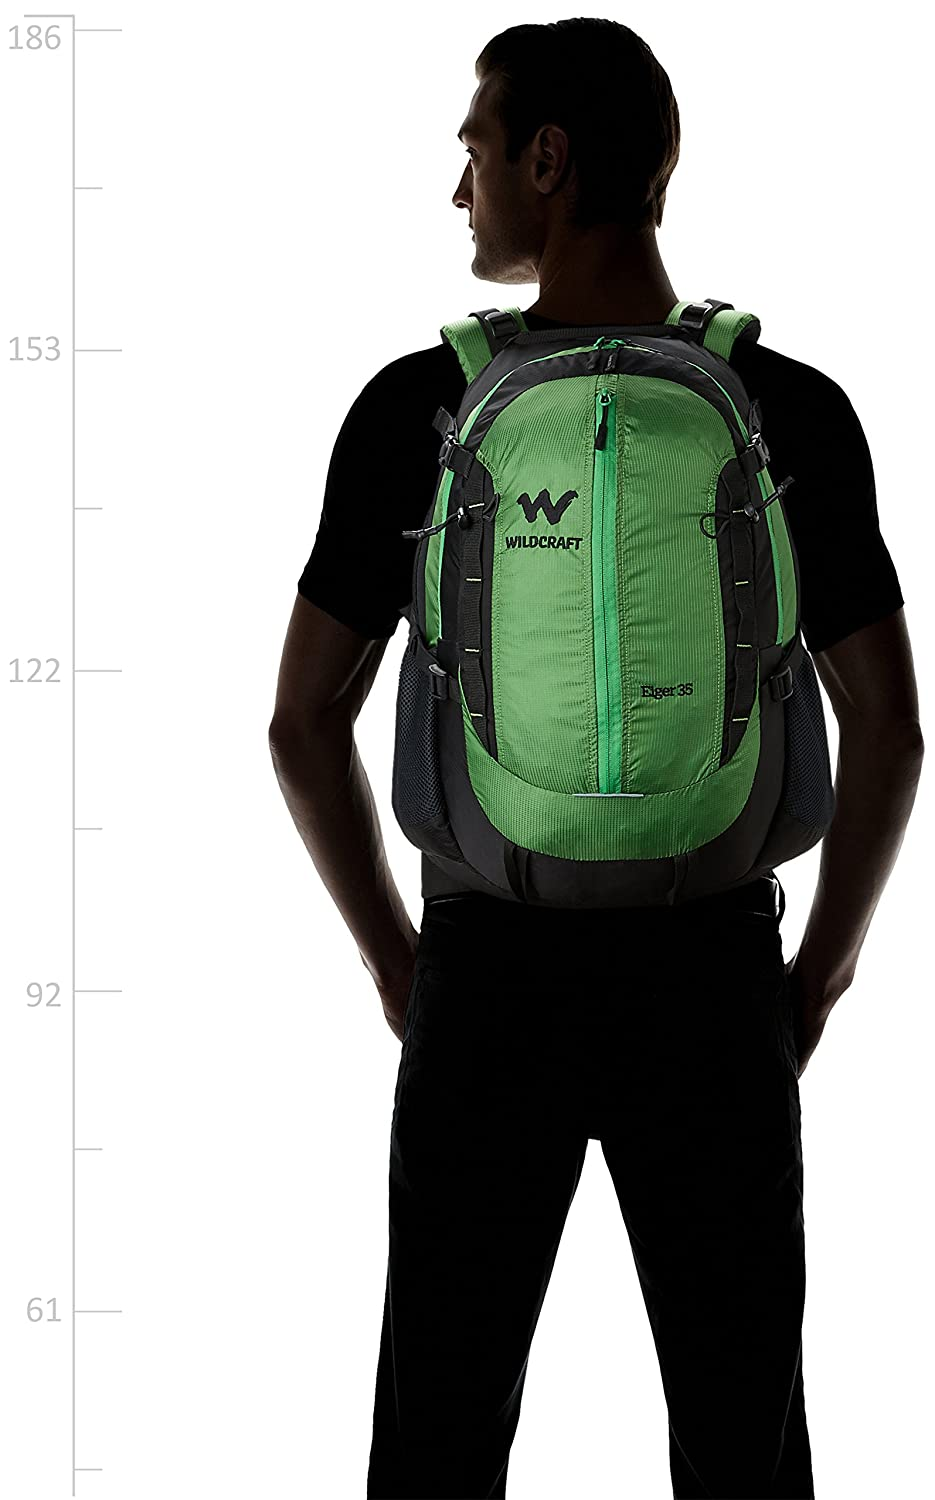 bd701ba6b2 Wildcraft 35 Liters Green Hiking Backpack (Eiger Plus Green)  Amazon.in   Bags